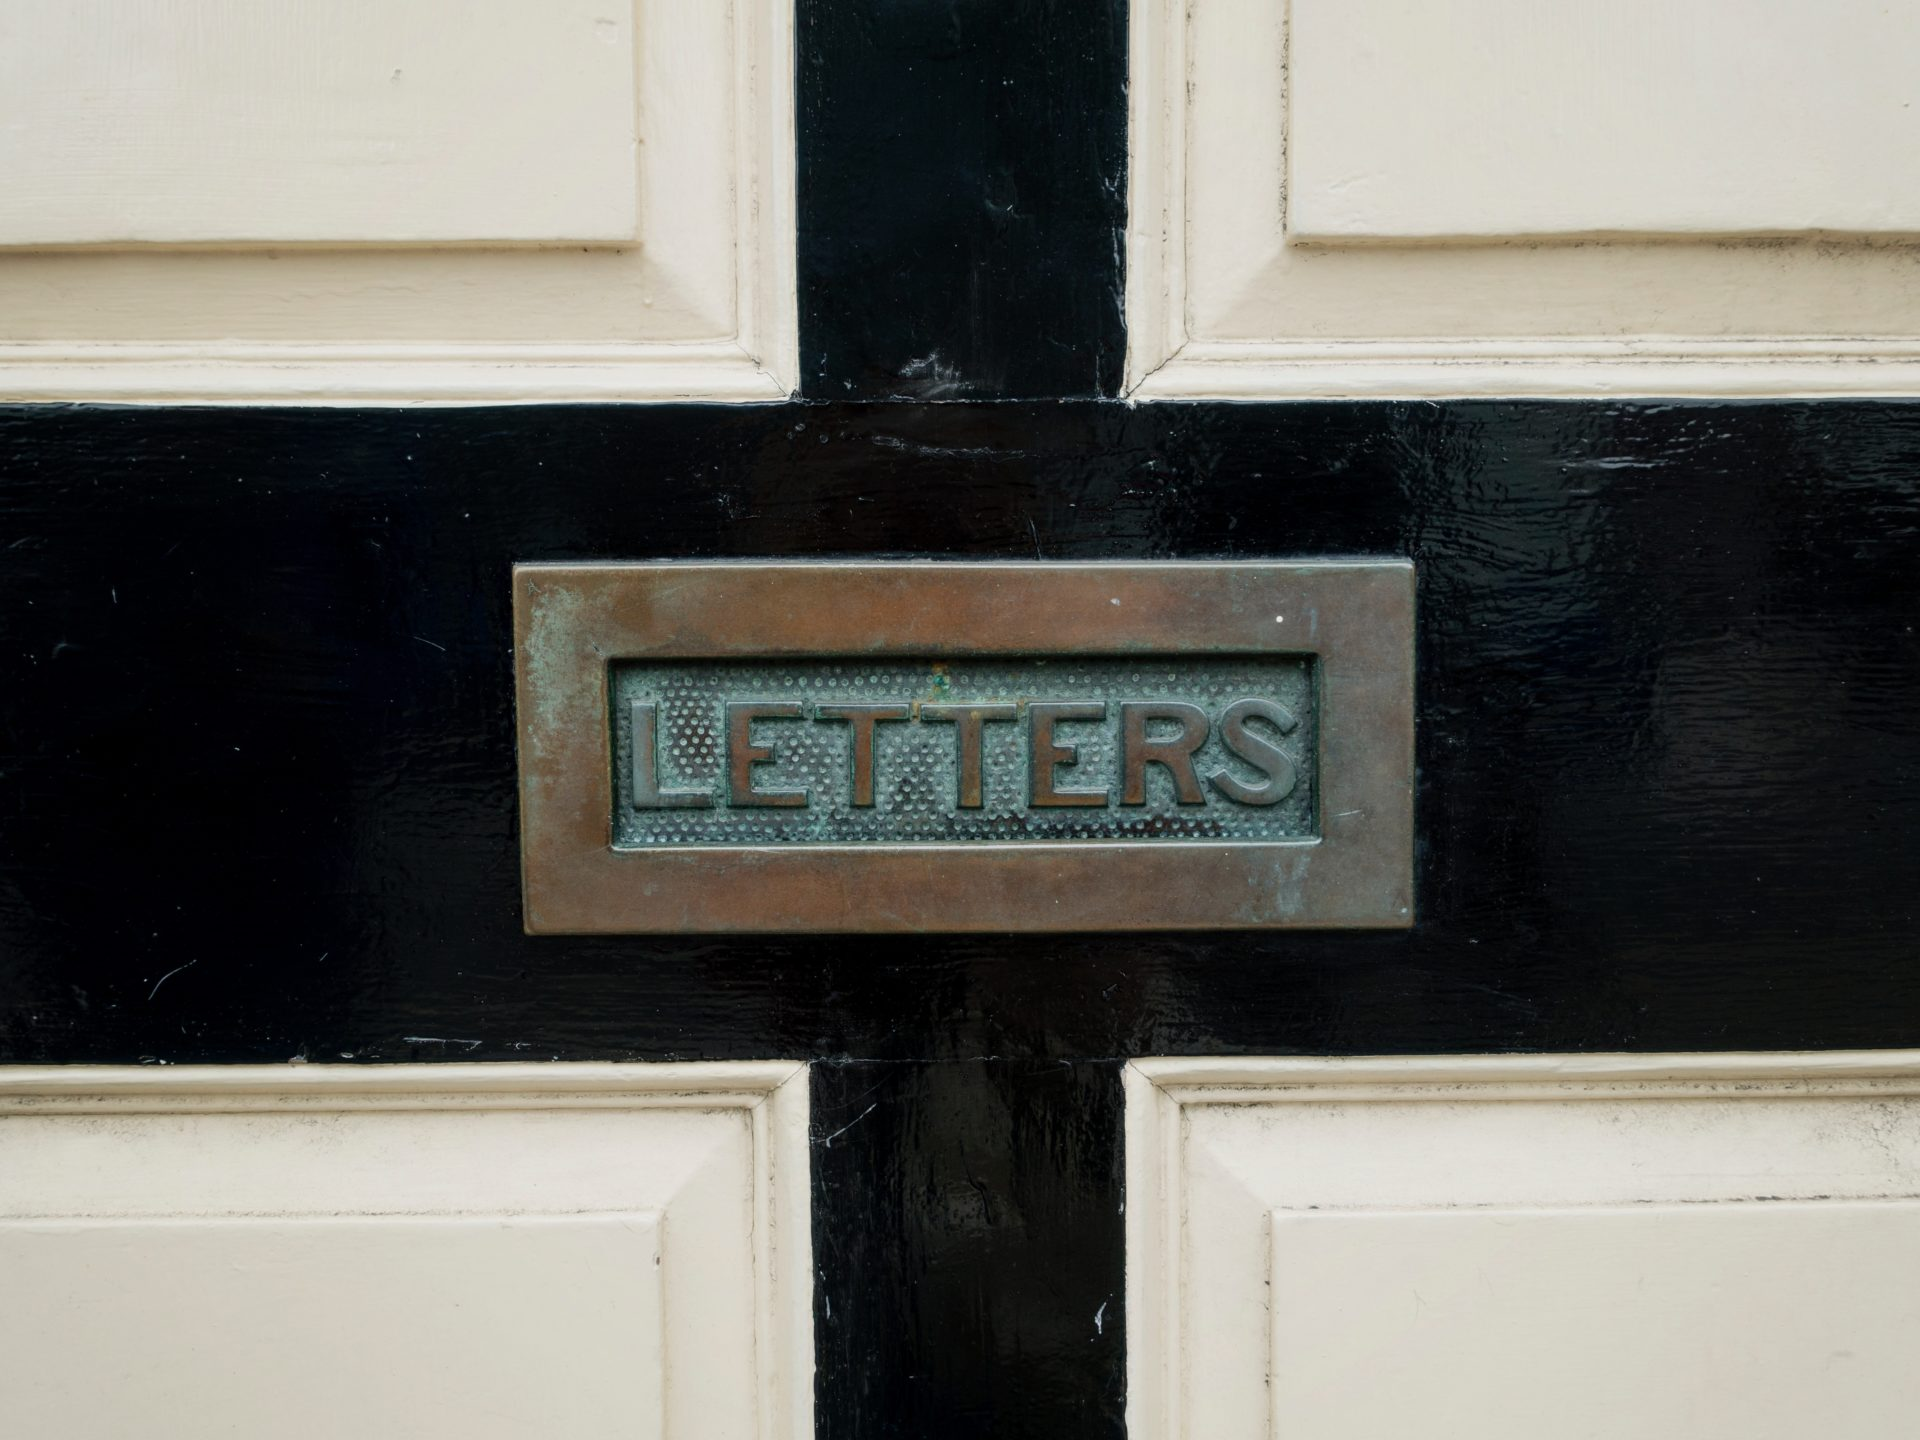 Letterbox Opening